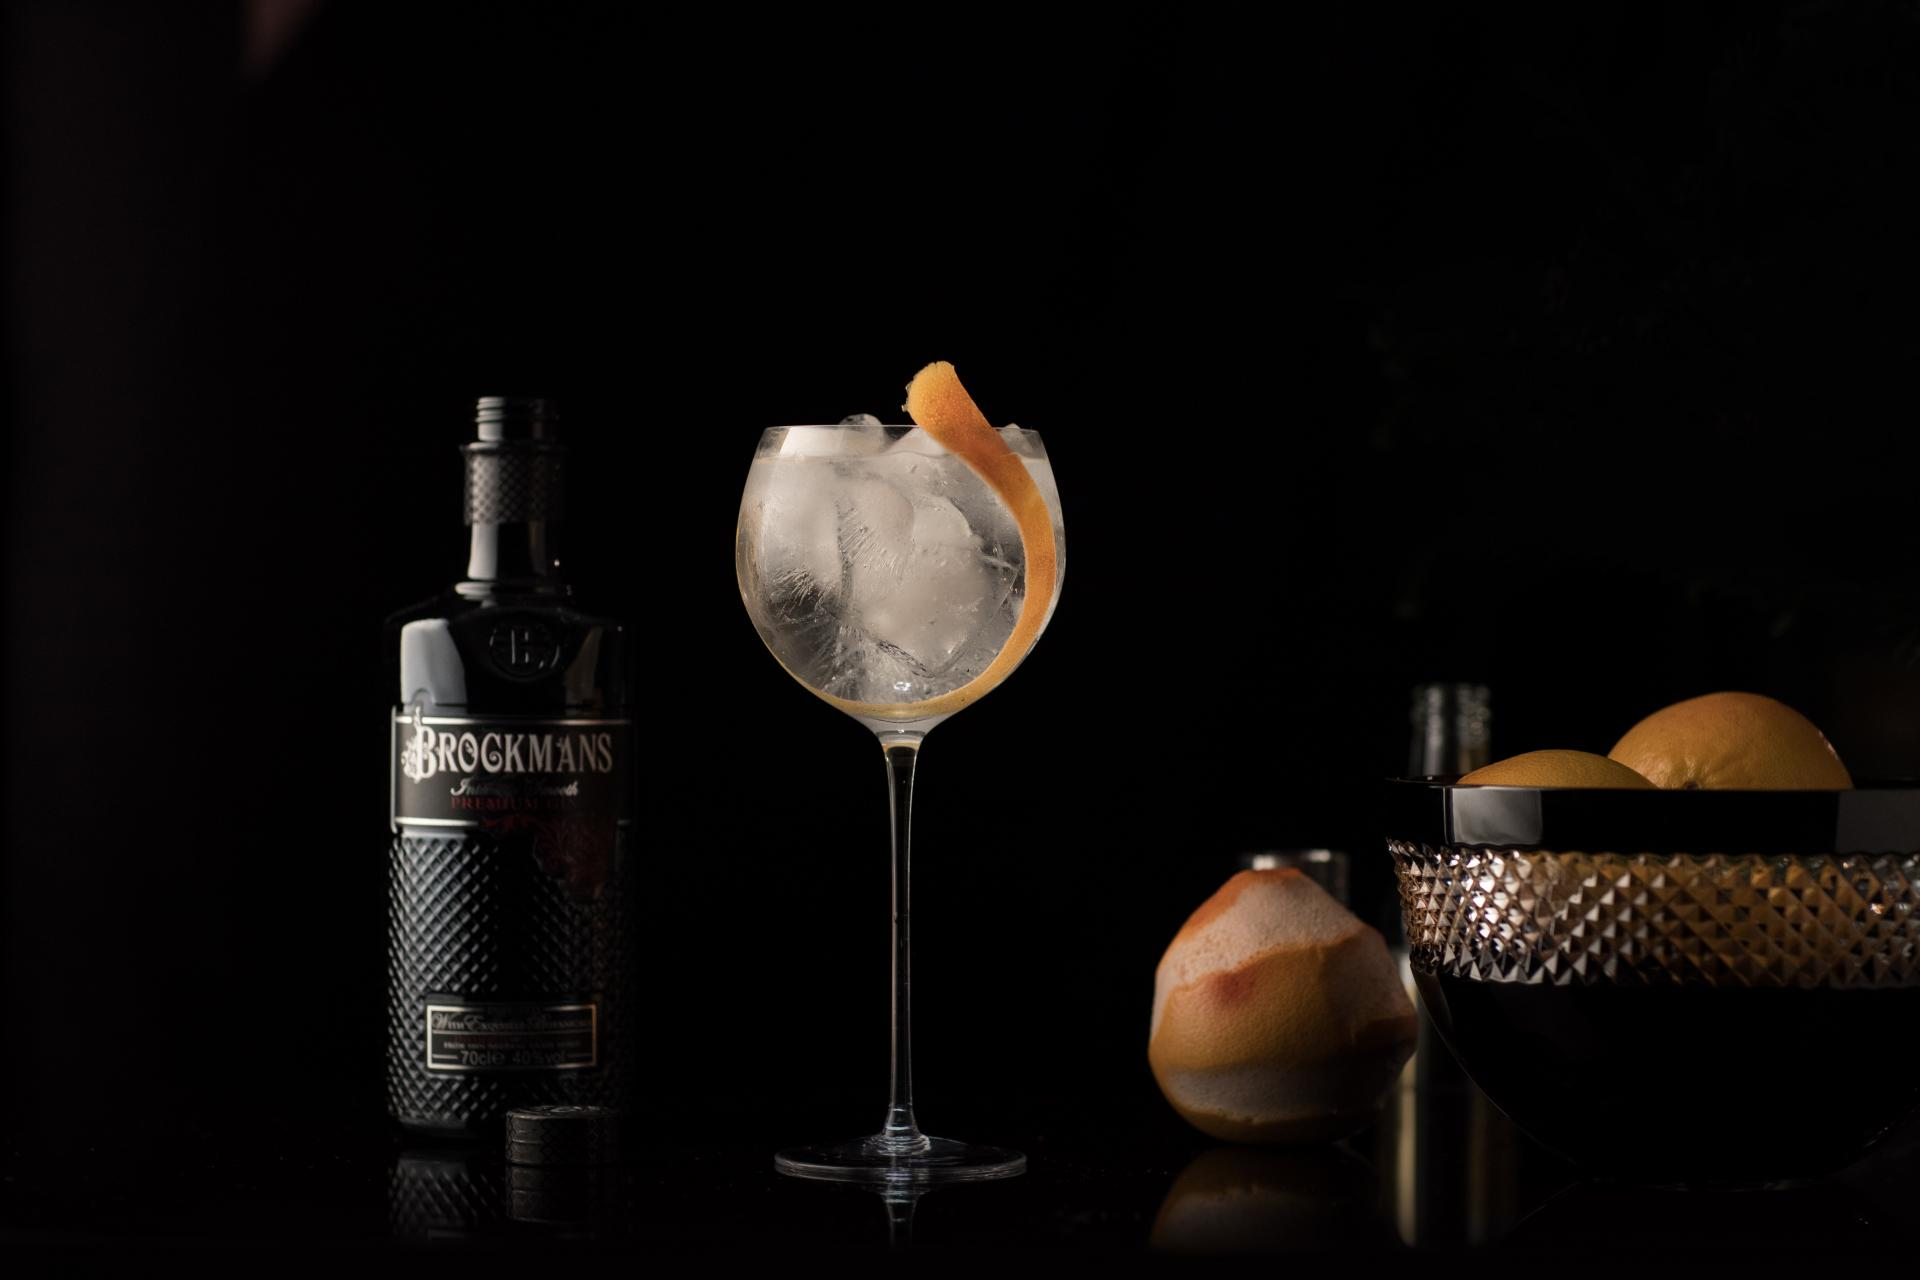 Father's Day 2021: Brockman's Gin